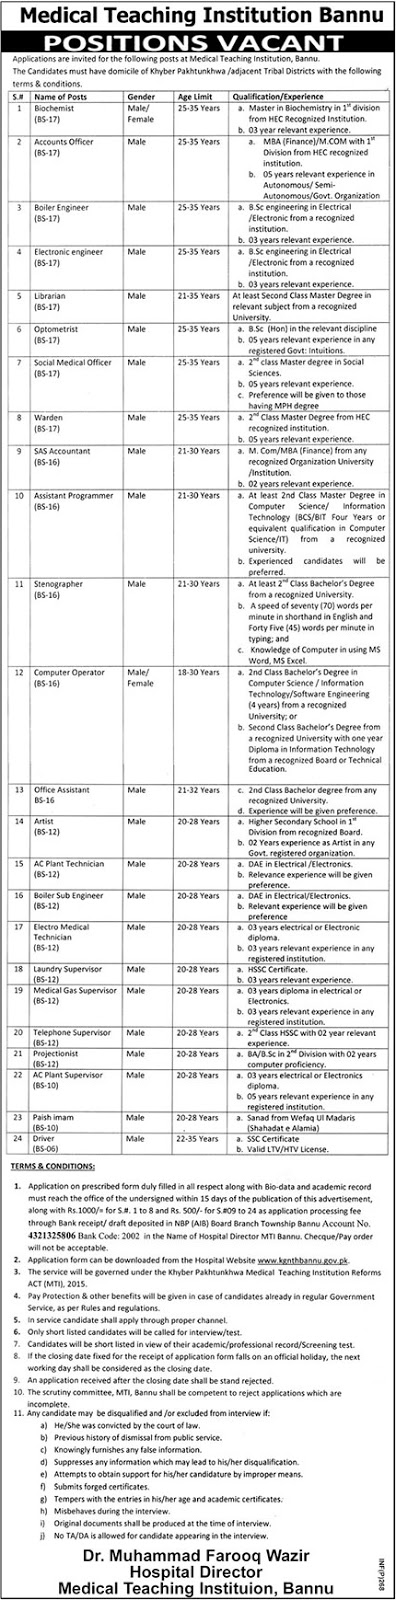 Jobs Vacancies Announces In Medical Teaching Institute Bannu At 18 January 2019